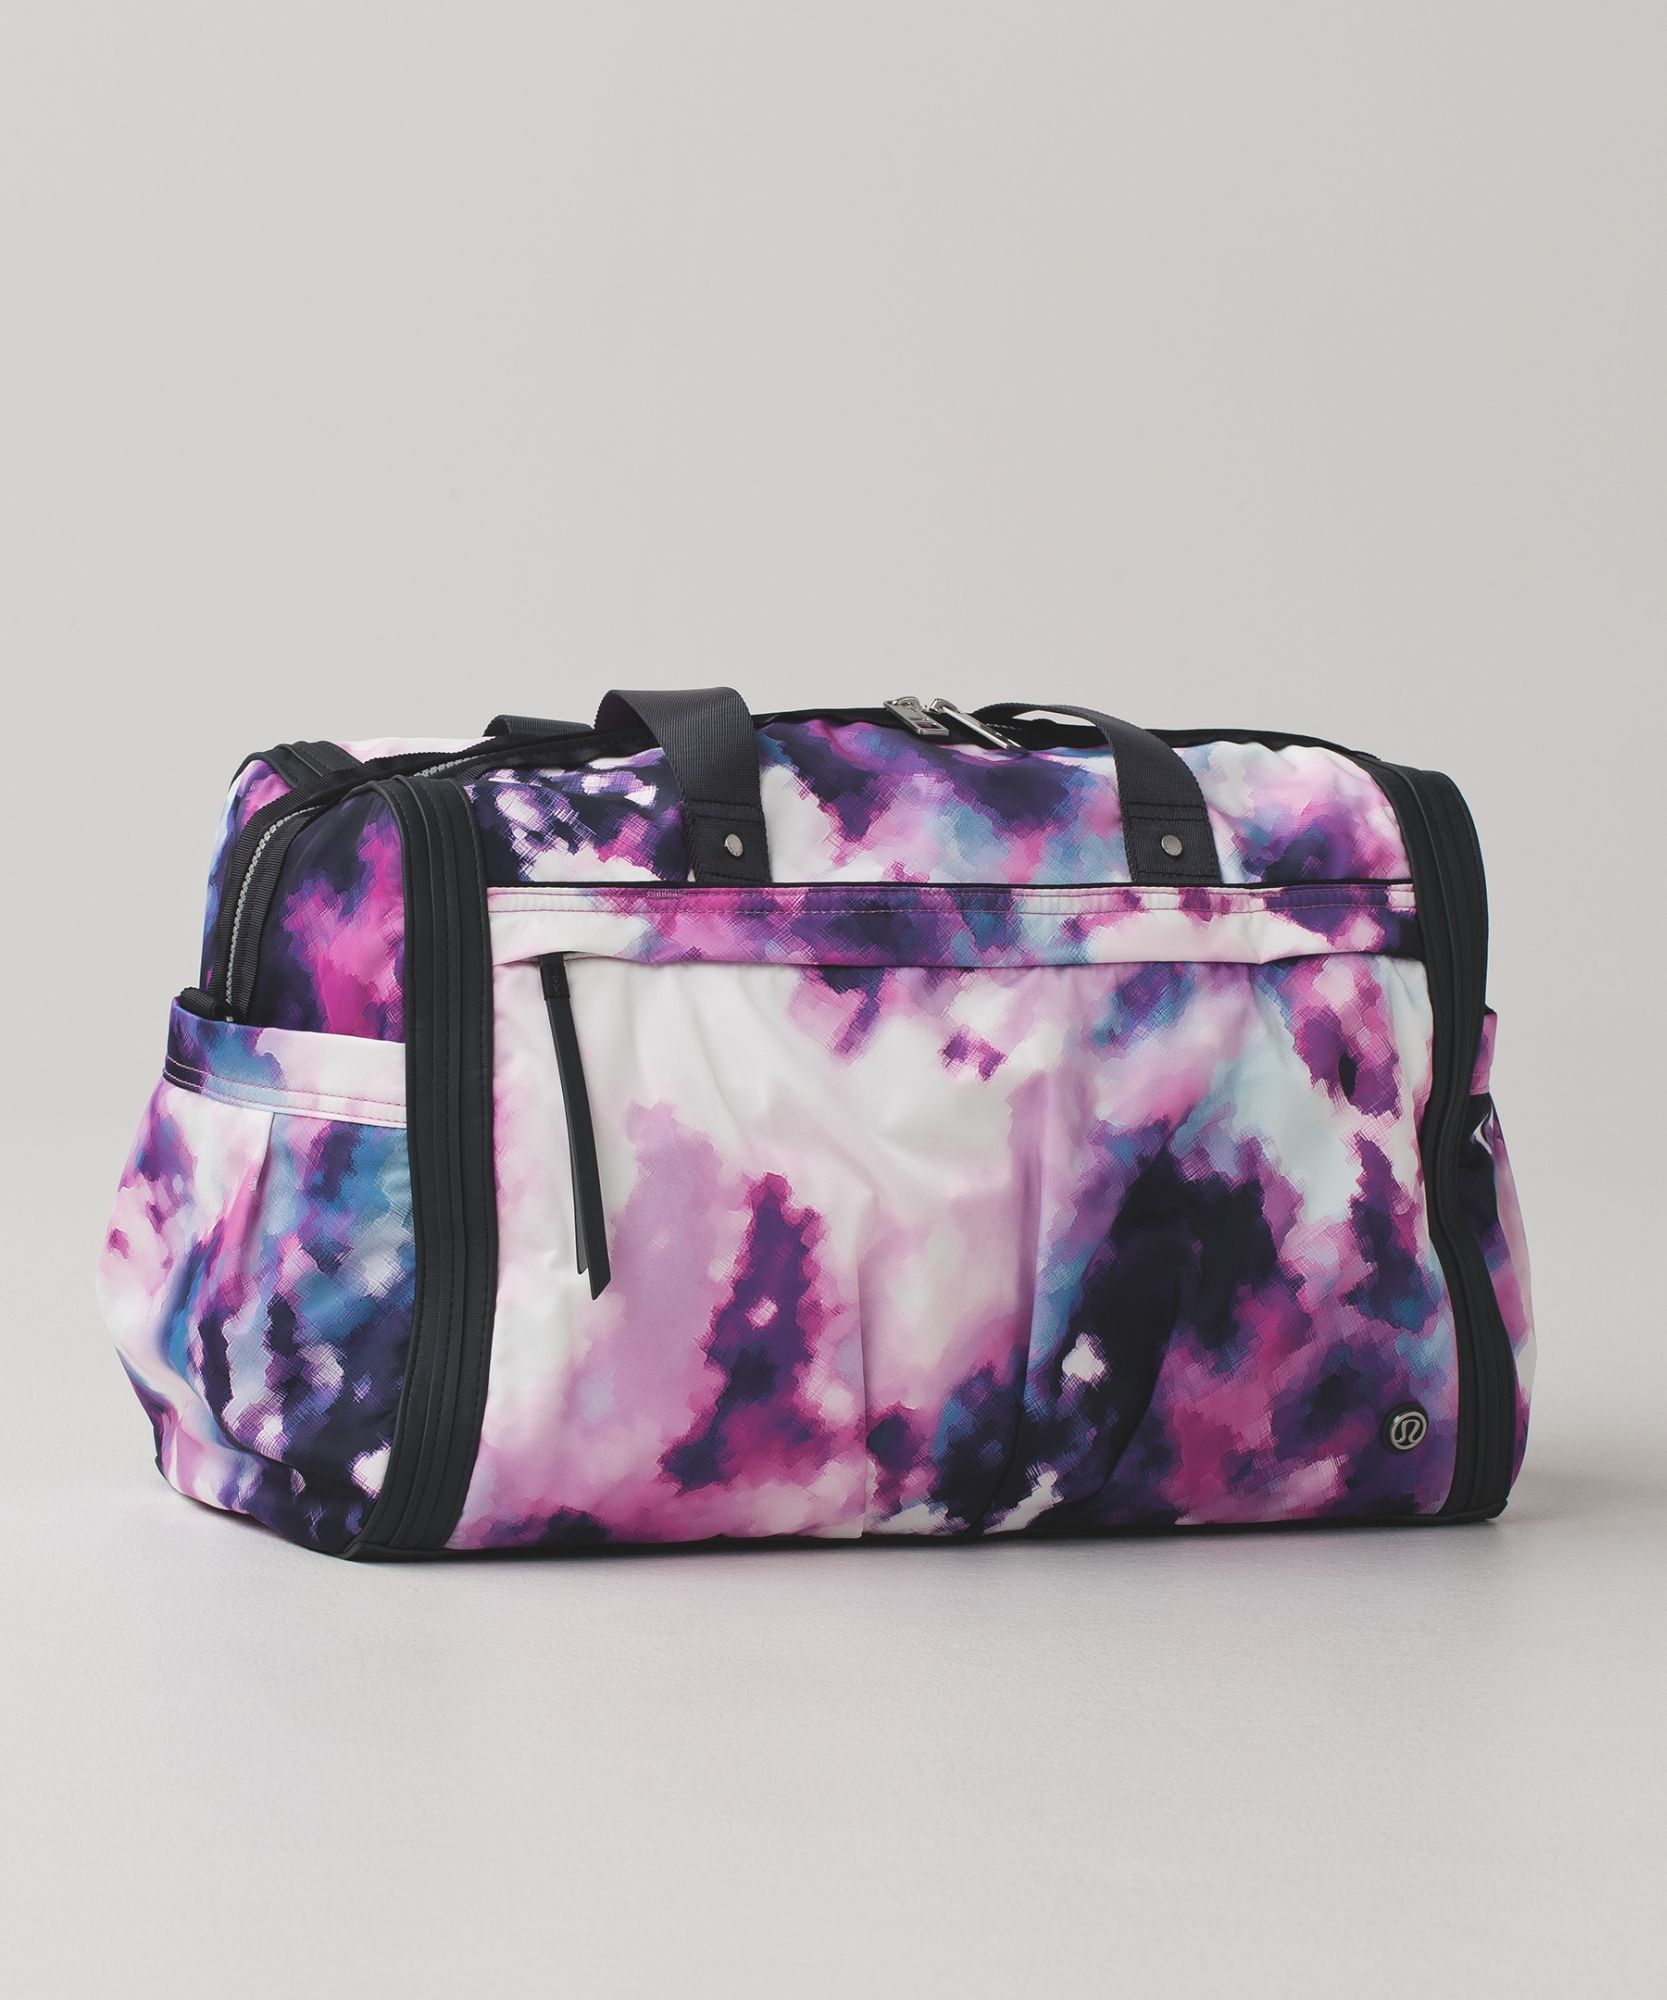 775fe9ec3be Lululemon Urban Warrior Duffel: Forget packing light—this roomy duffel fits  everything you need with room to spare.